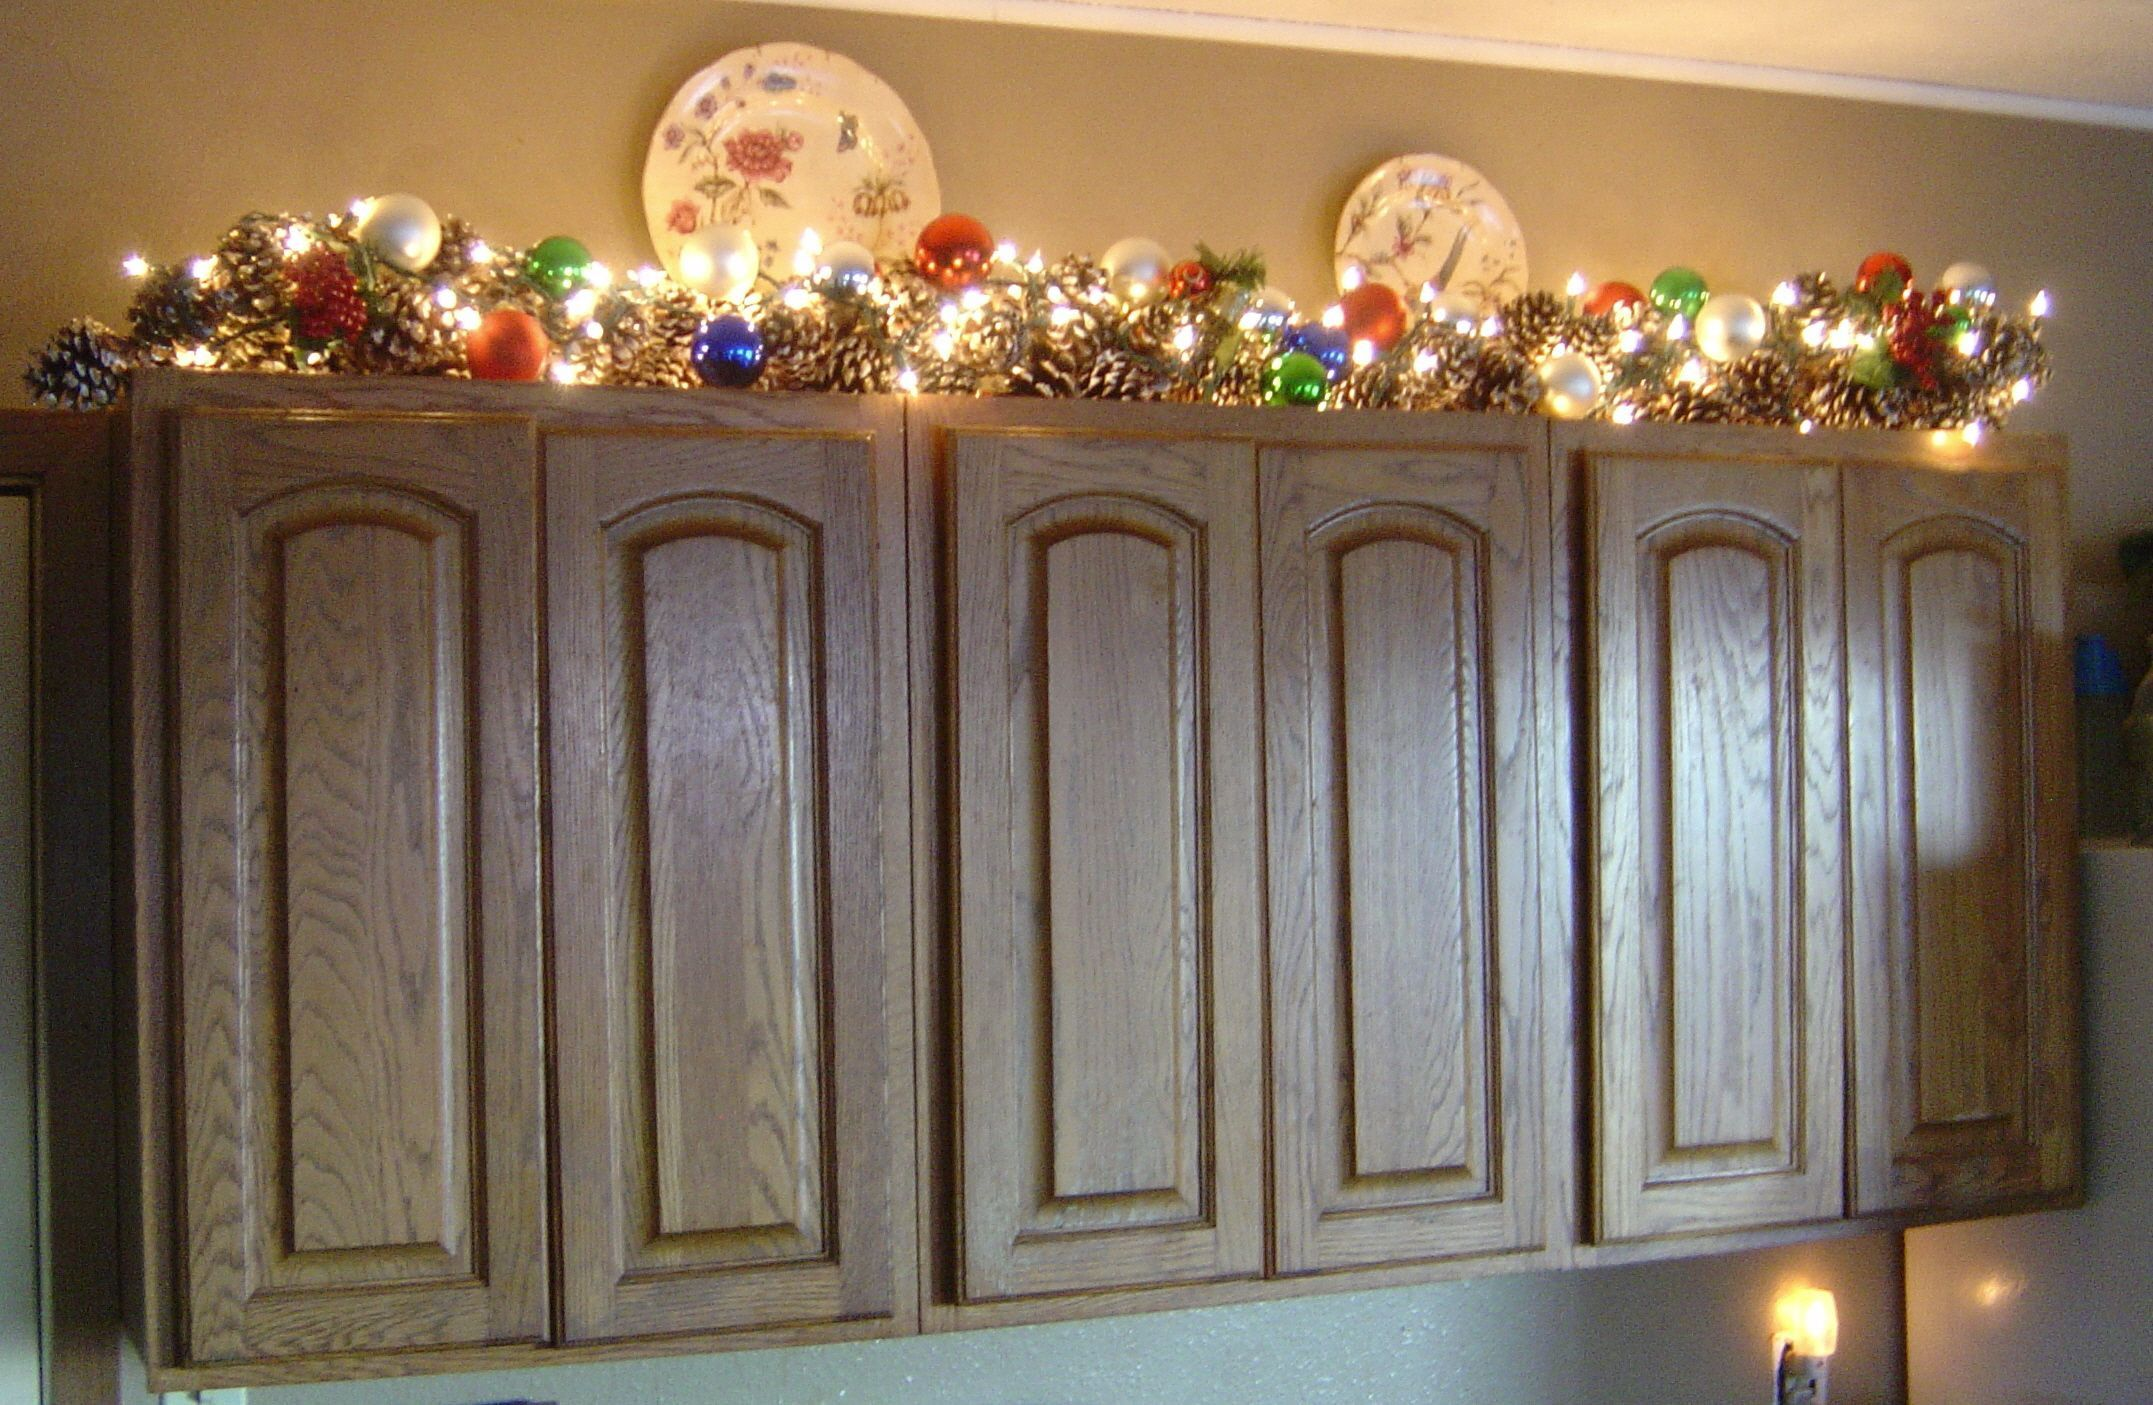 Christmas Decorating Ideas For Top Of Kitchen Cabinets Artistic Color Decor On Design Of Modular Kitch In 2020 Christmas Kitchen Decor Christmas Kitchen Christmas Home